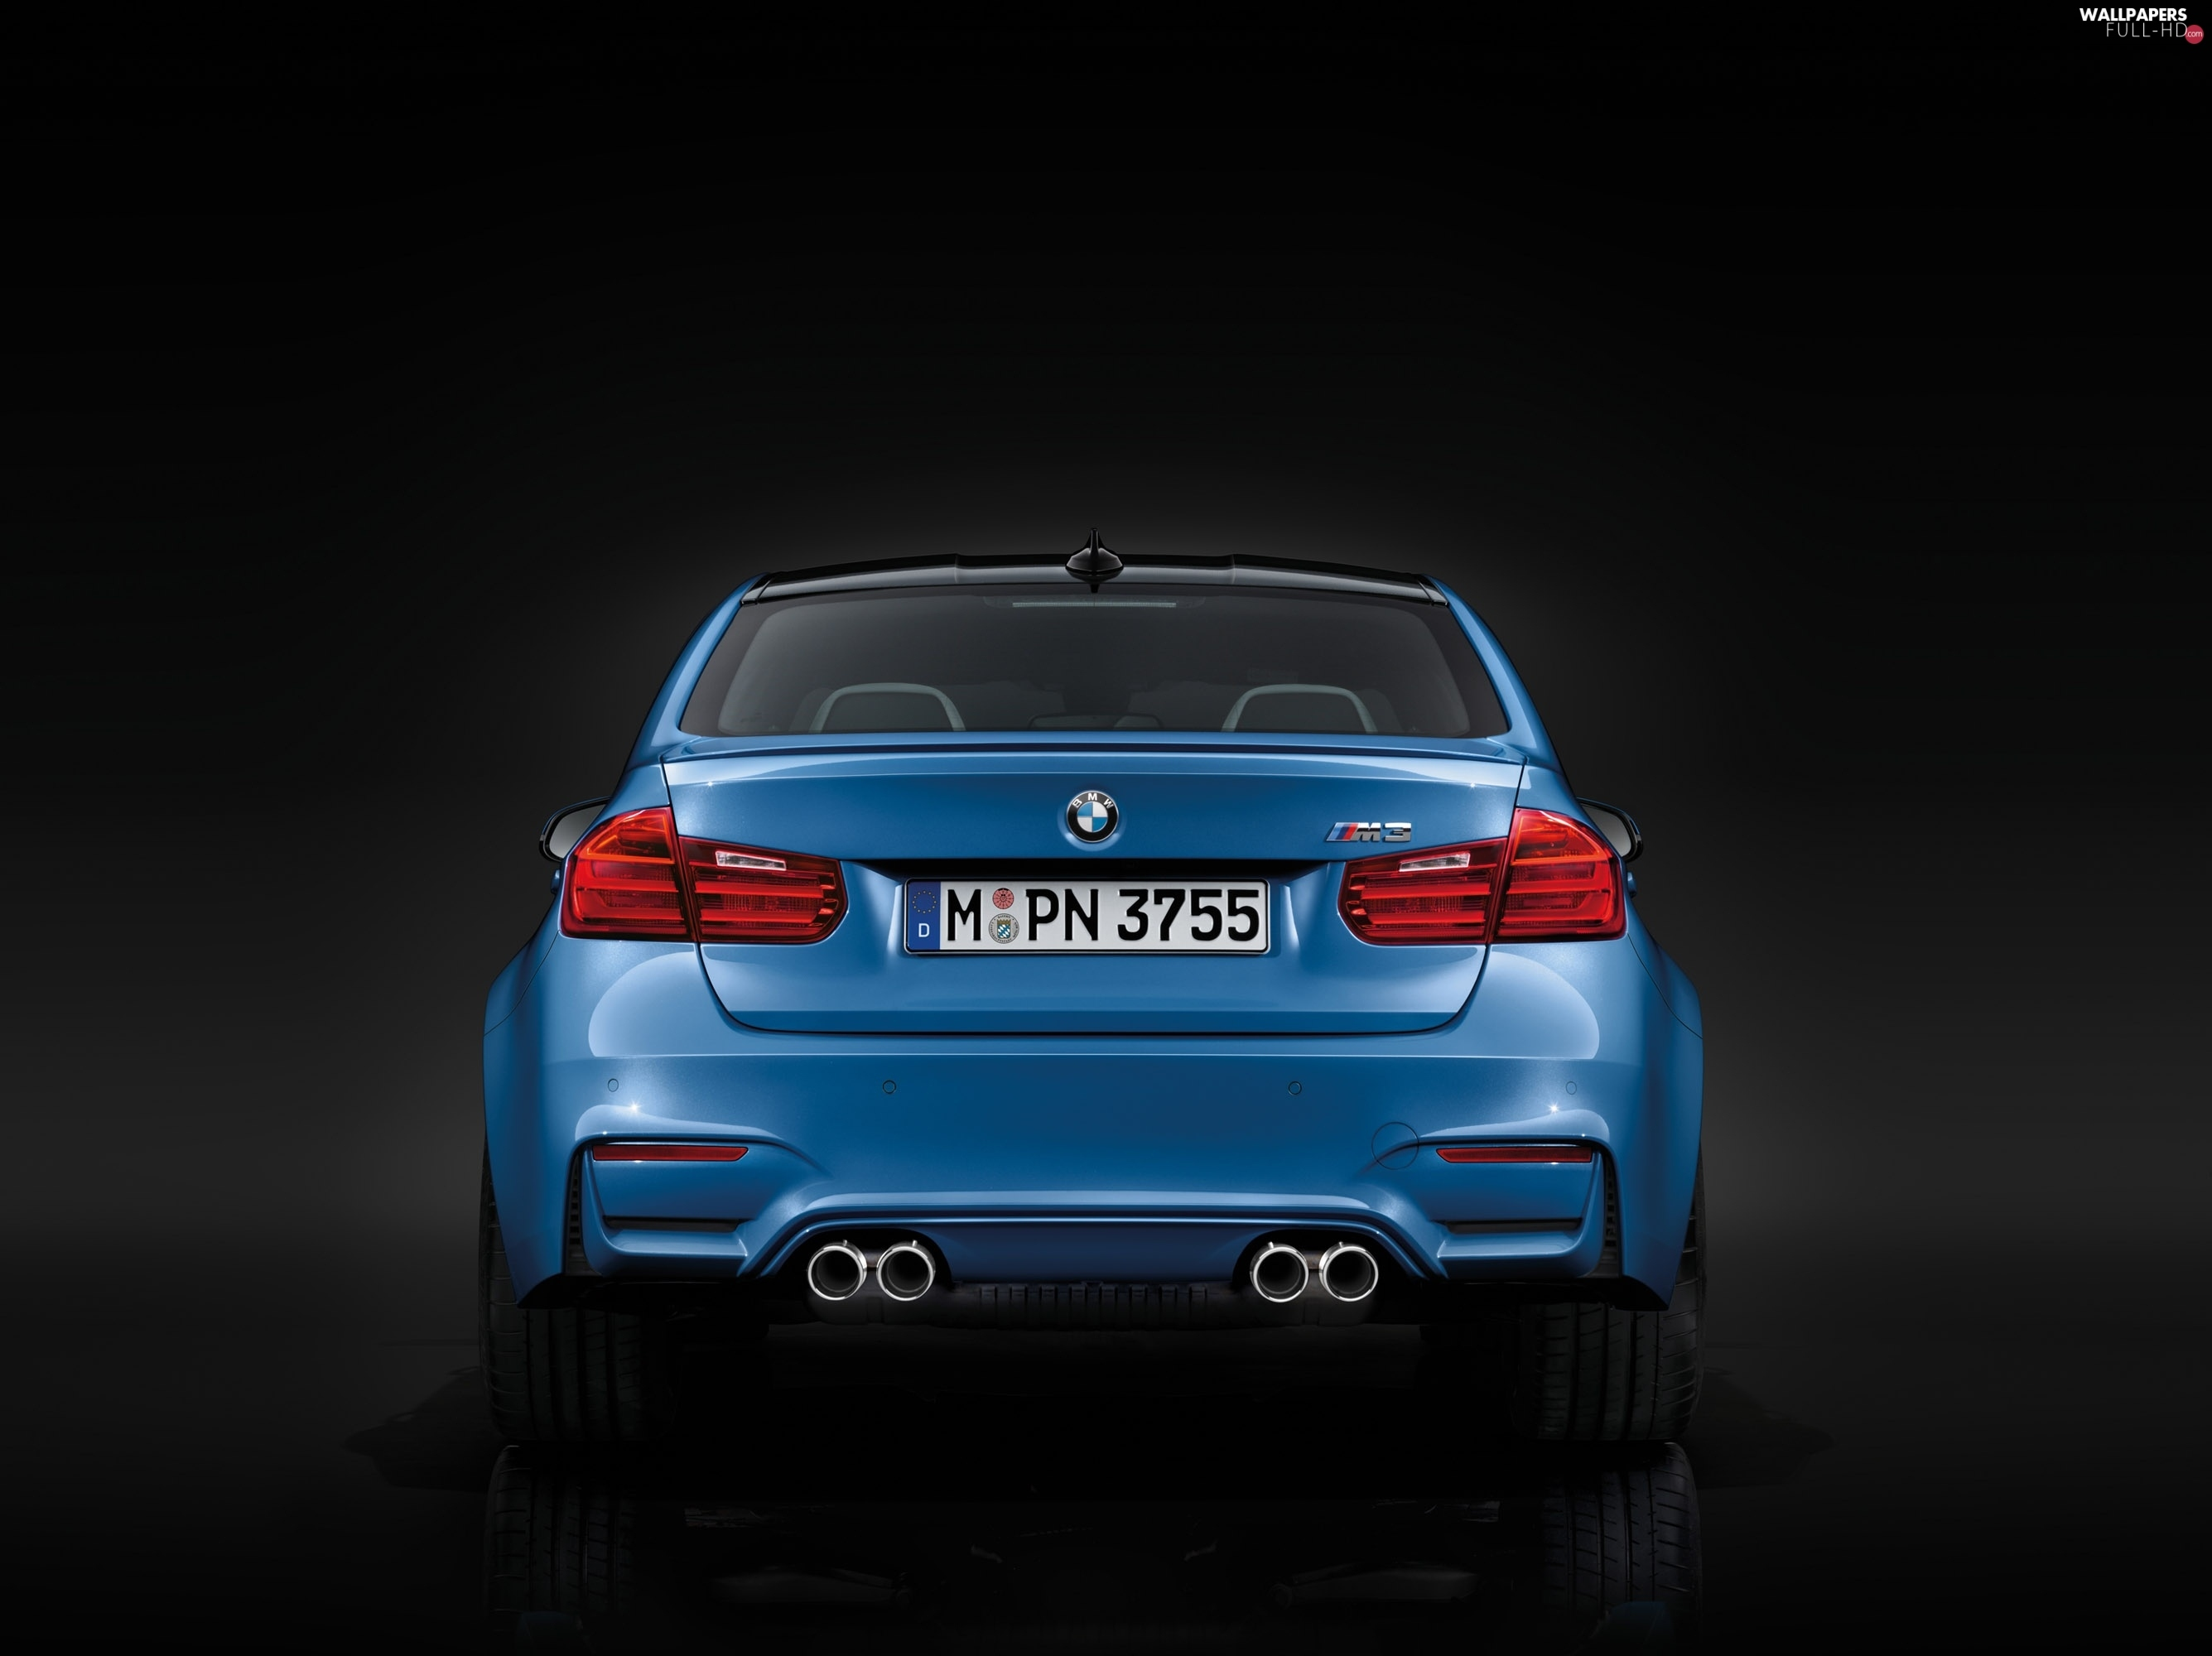 Exhaust Pipes, Back, Blue, BMW M3